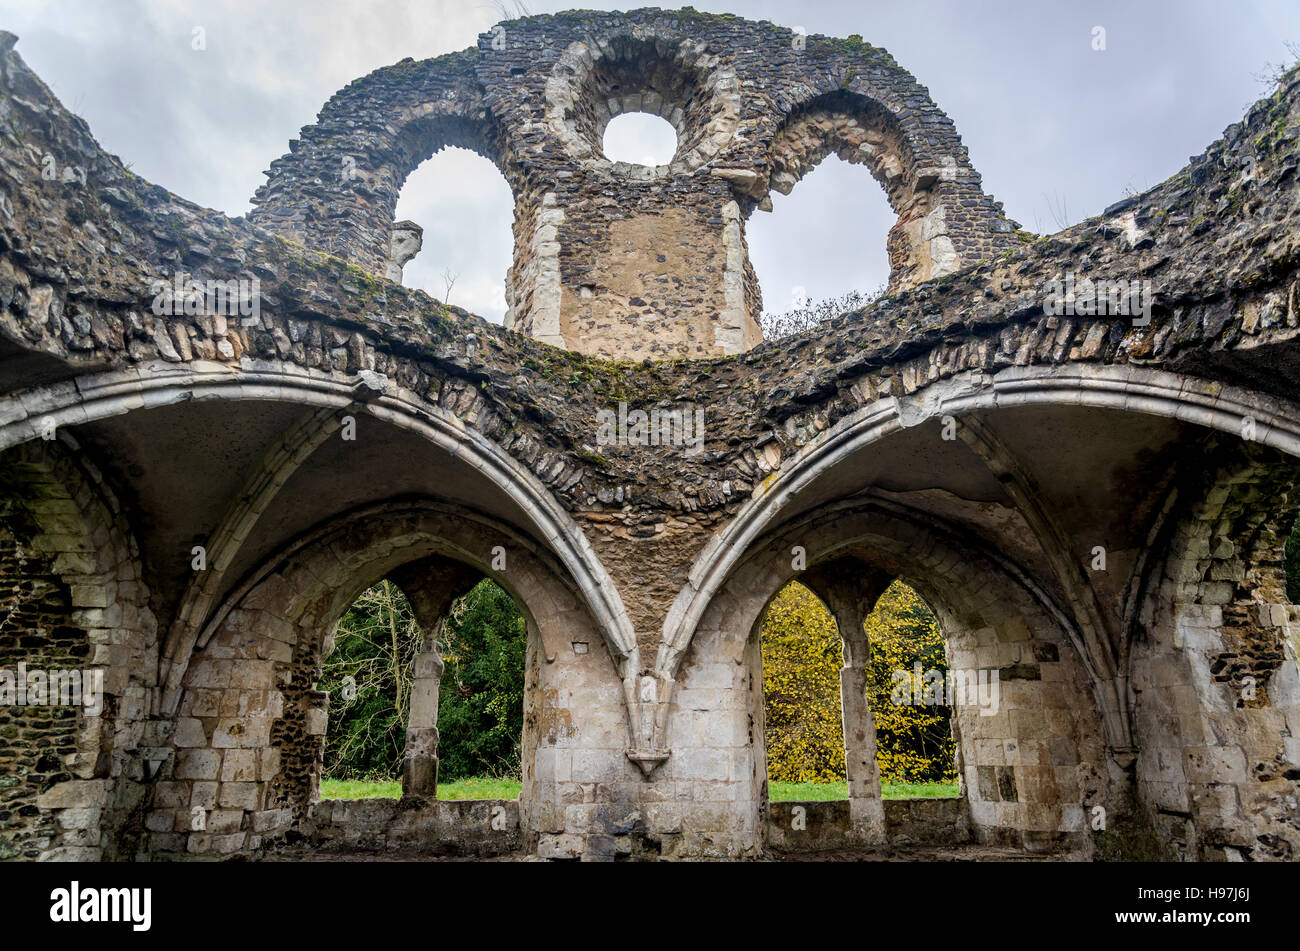 Waverley Abbey, ruins of the first Cistercian monastery in England, Farnham, Surrey, UK - Stock Image